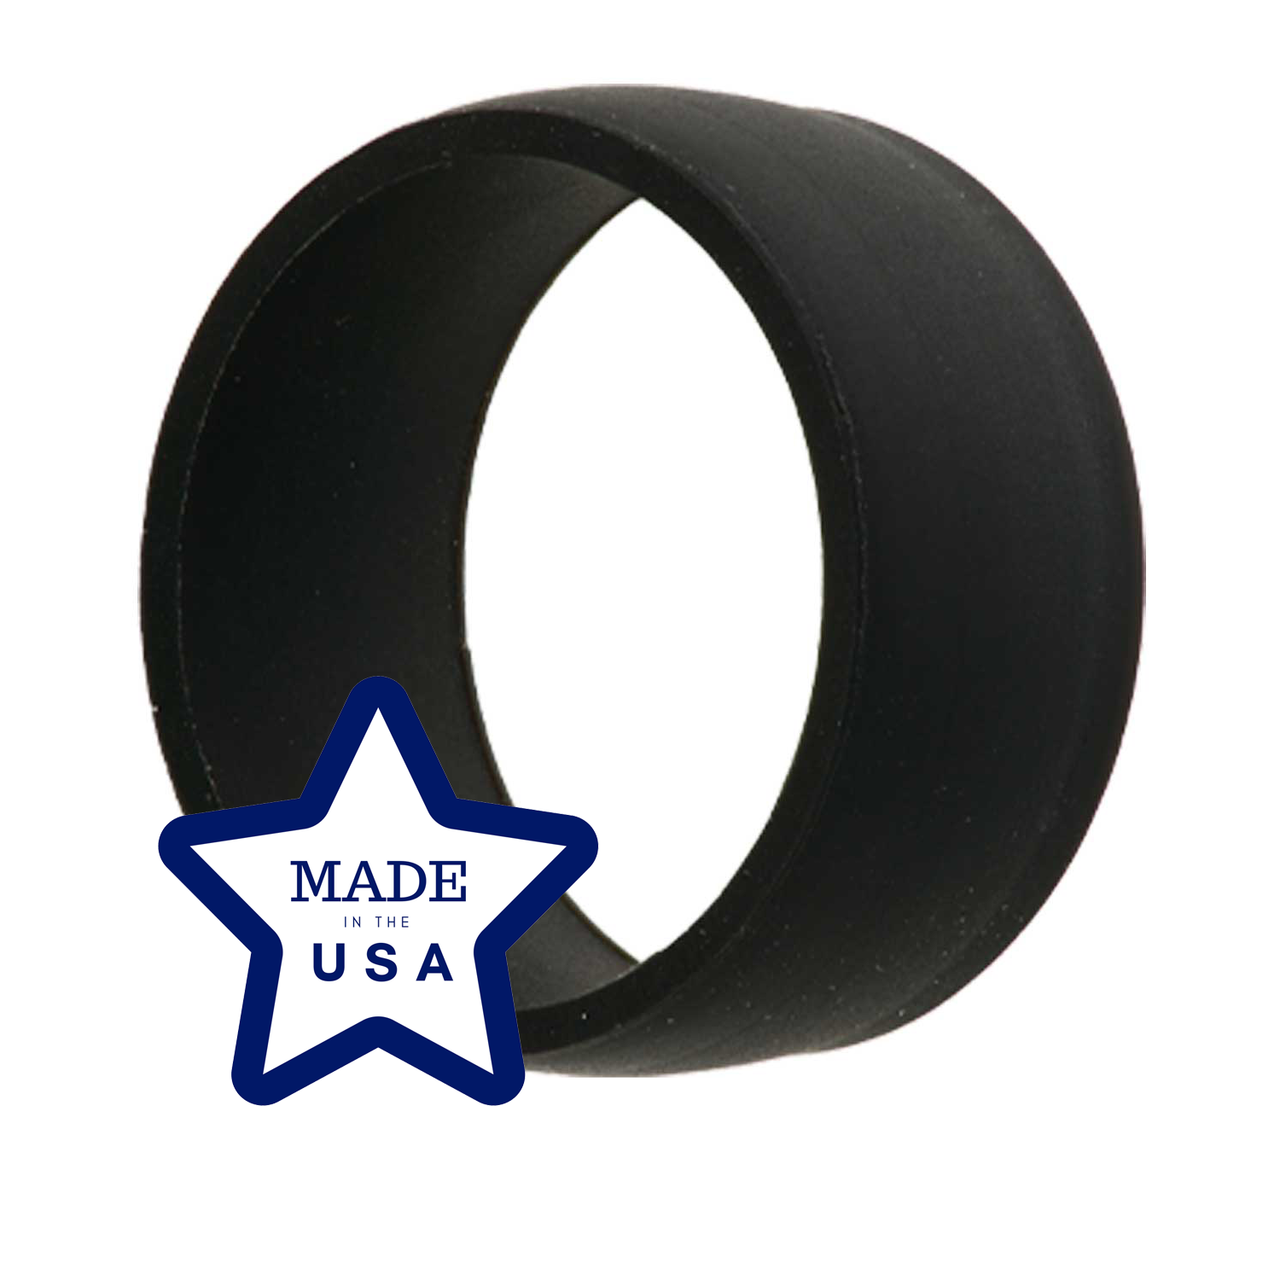 fd1b821fc31ea Made in the USA Silicone Ring